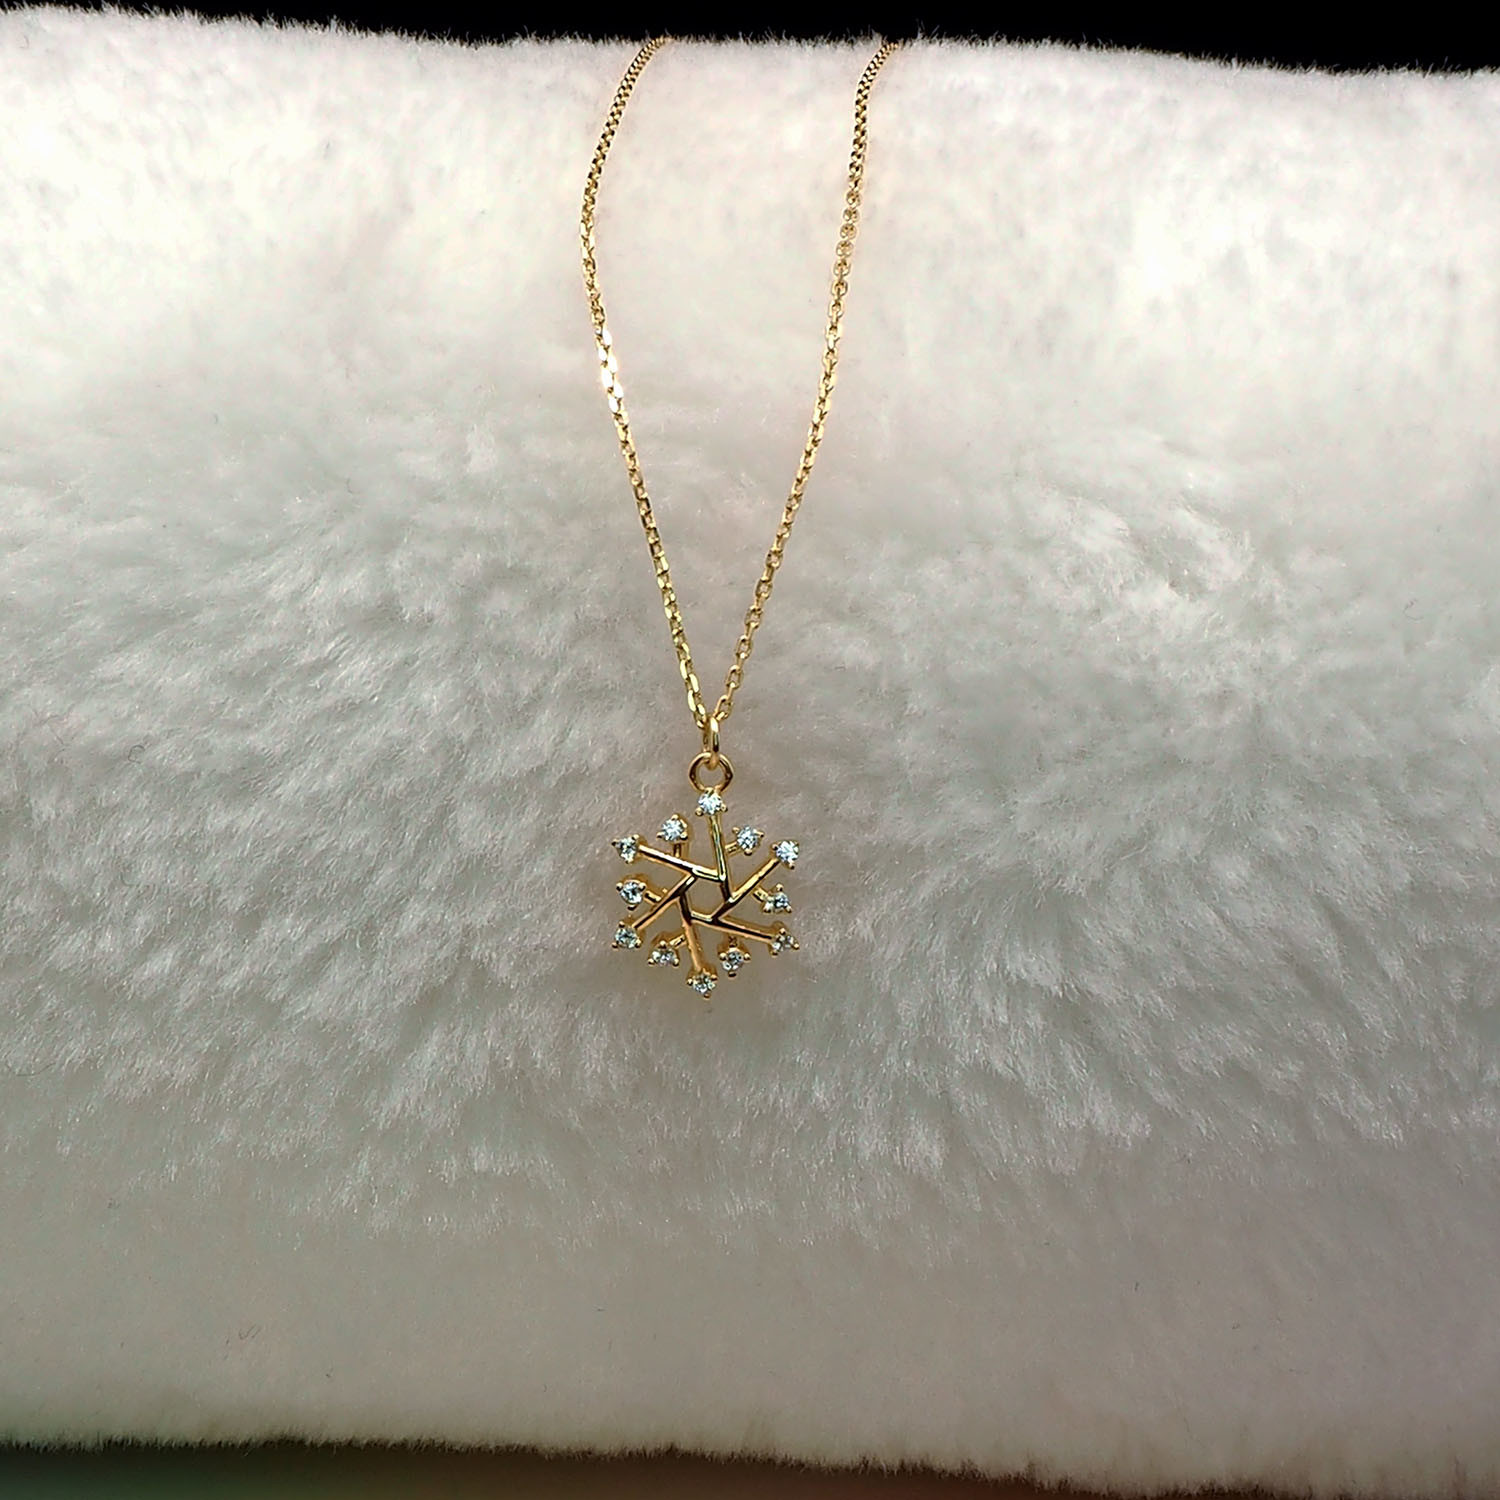 China Gold Plated Jewelry Imitation Jewelry Fashion Jewelry Snowflake Necklace For Girls China Silver Jewelry And Silver Necklace Price